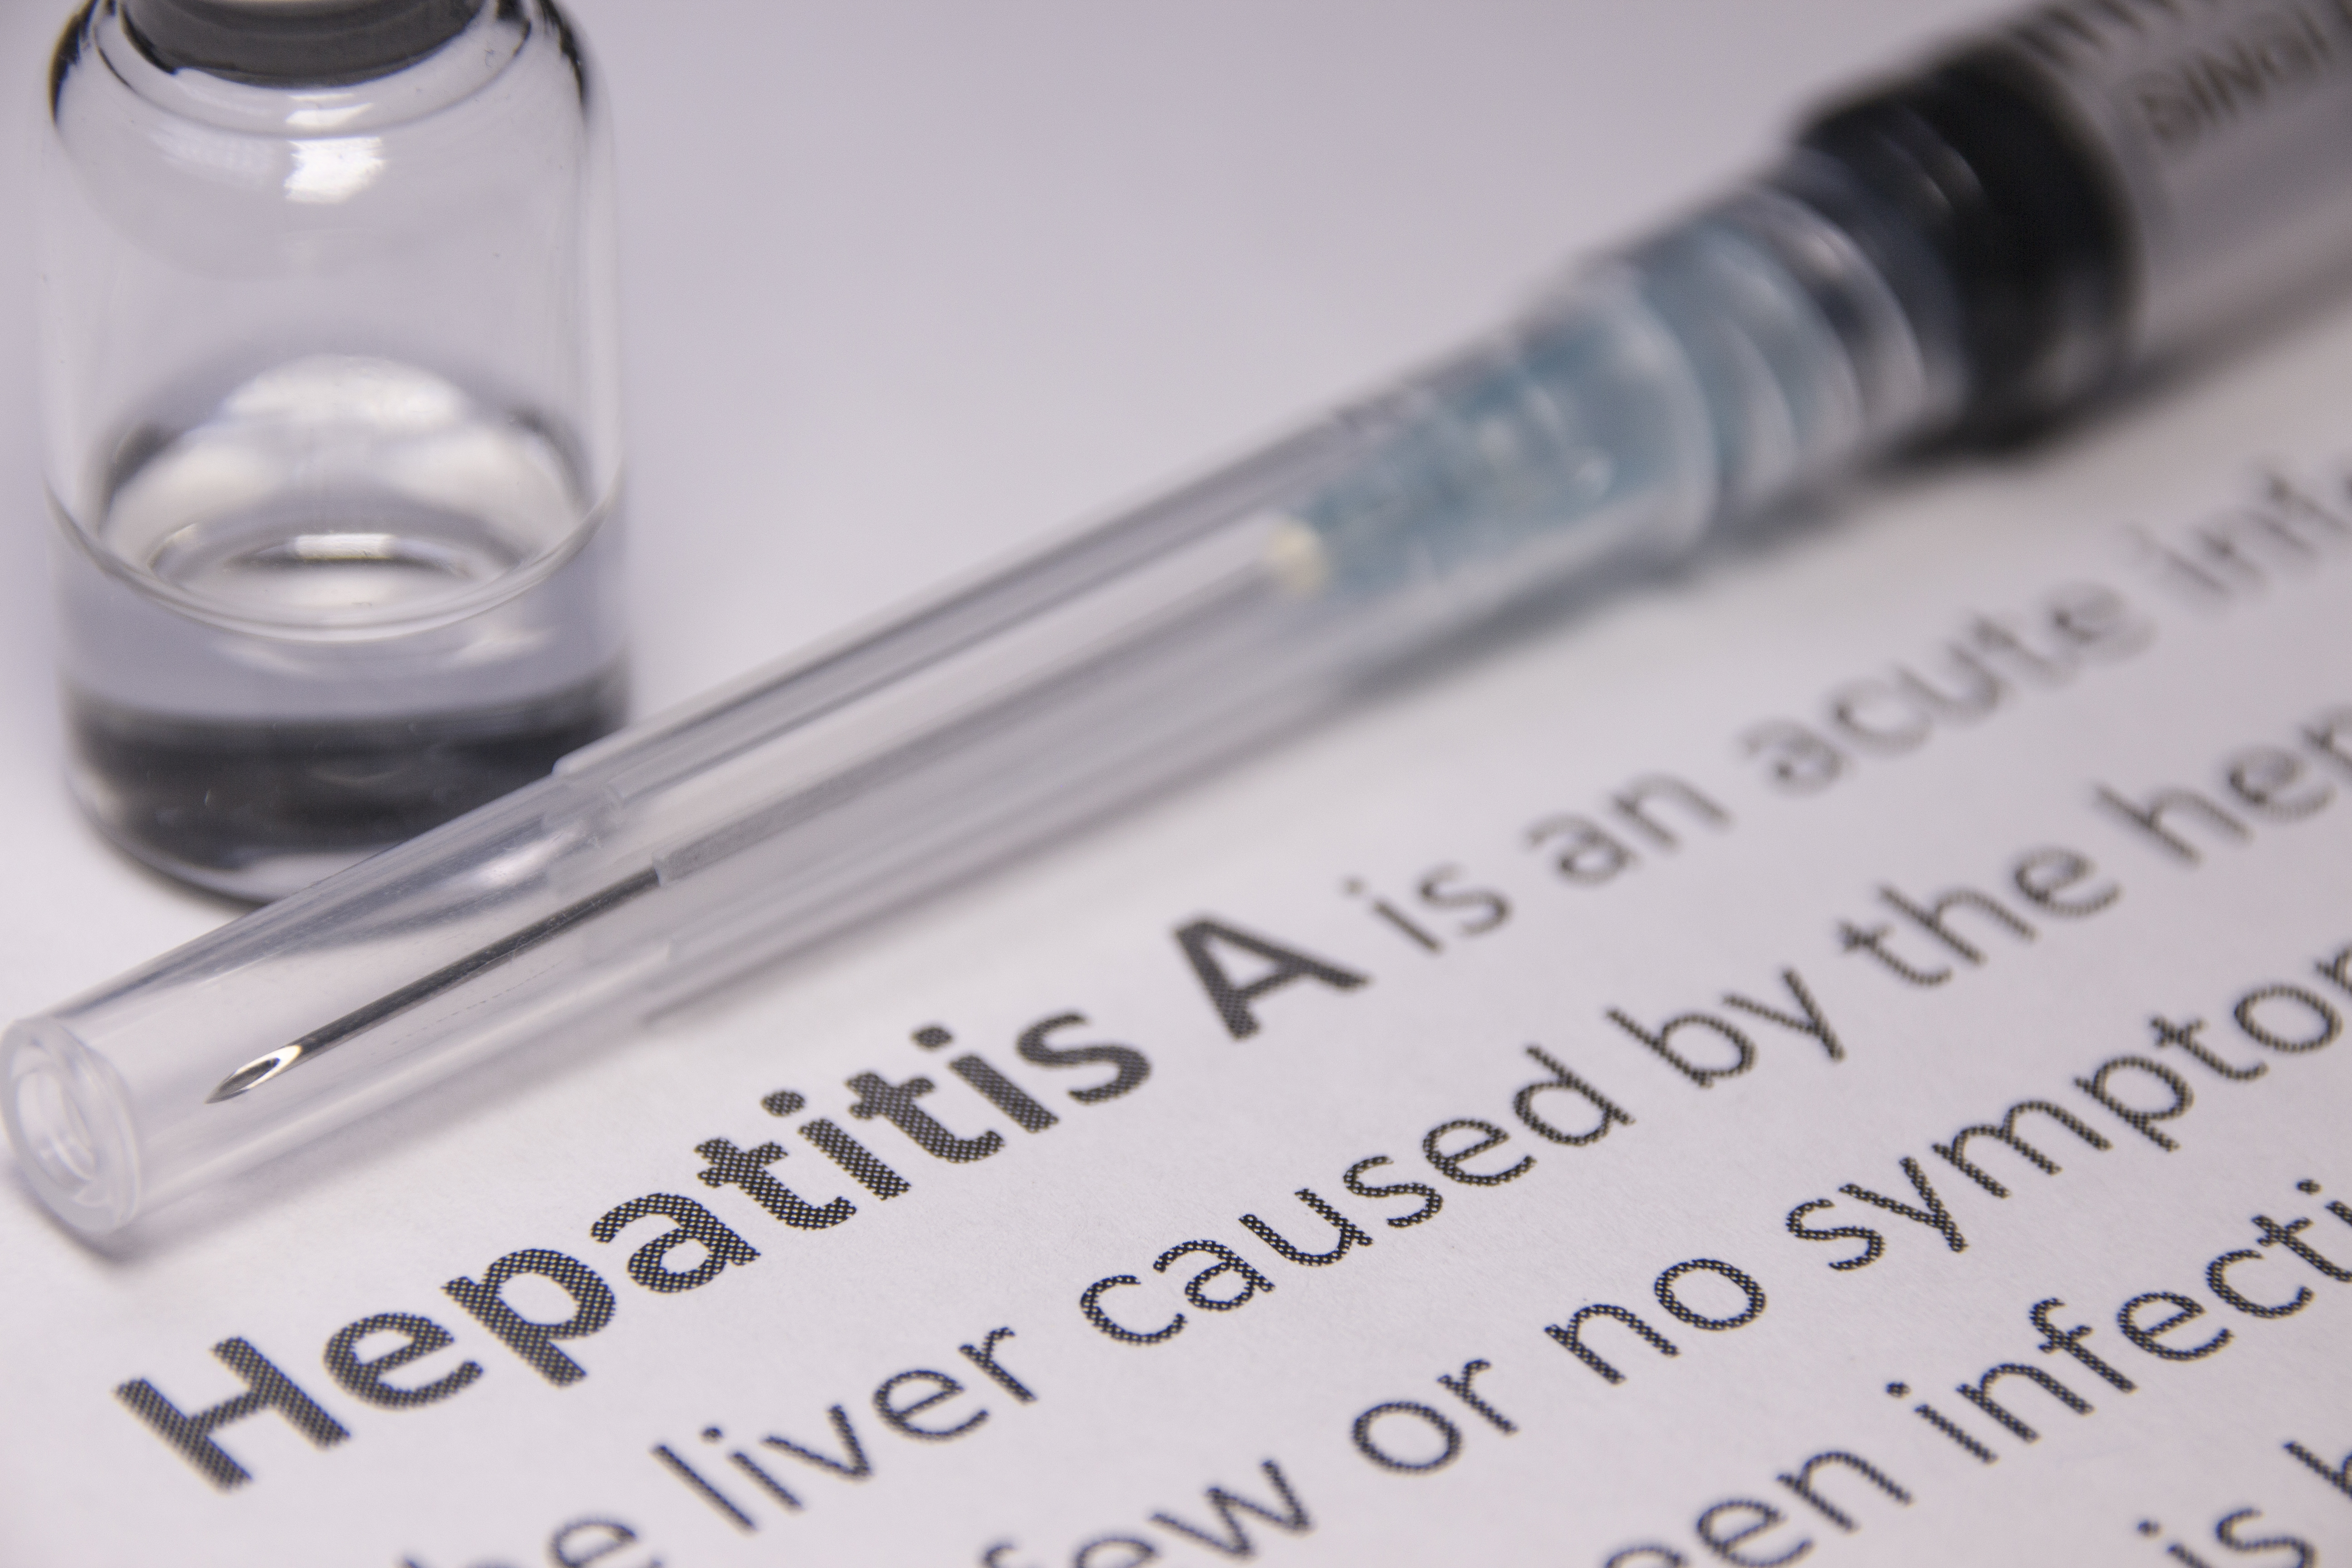 NSW Health Investigating Hepatitis A Outbreak in Sydney